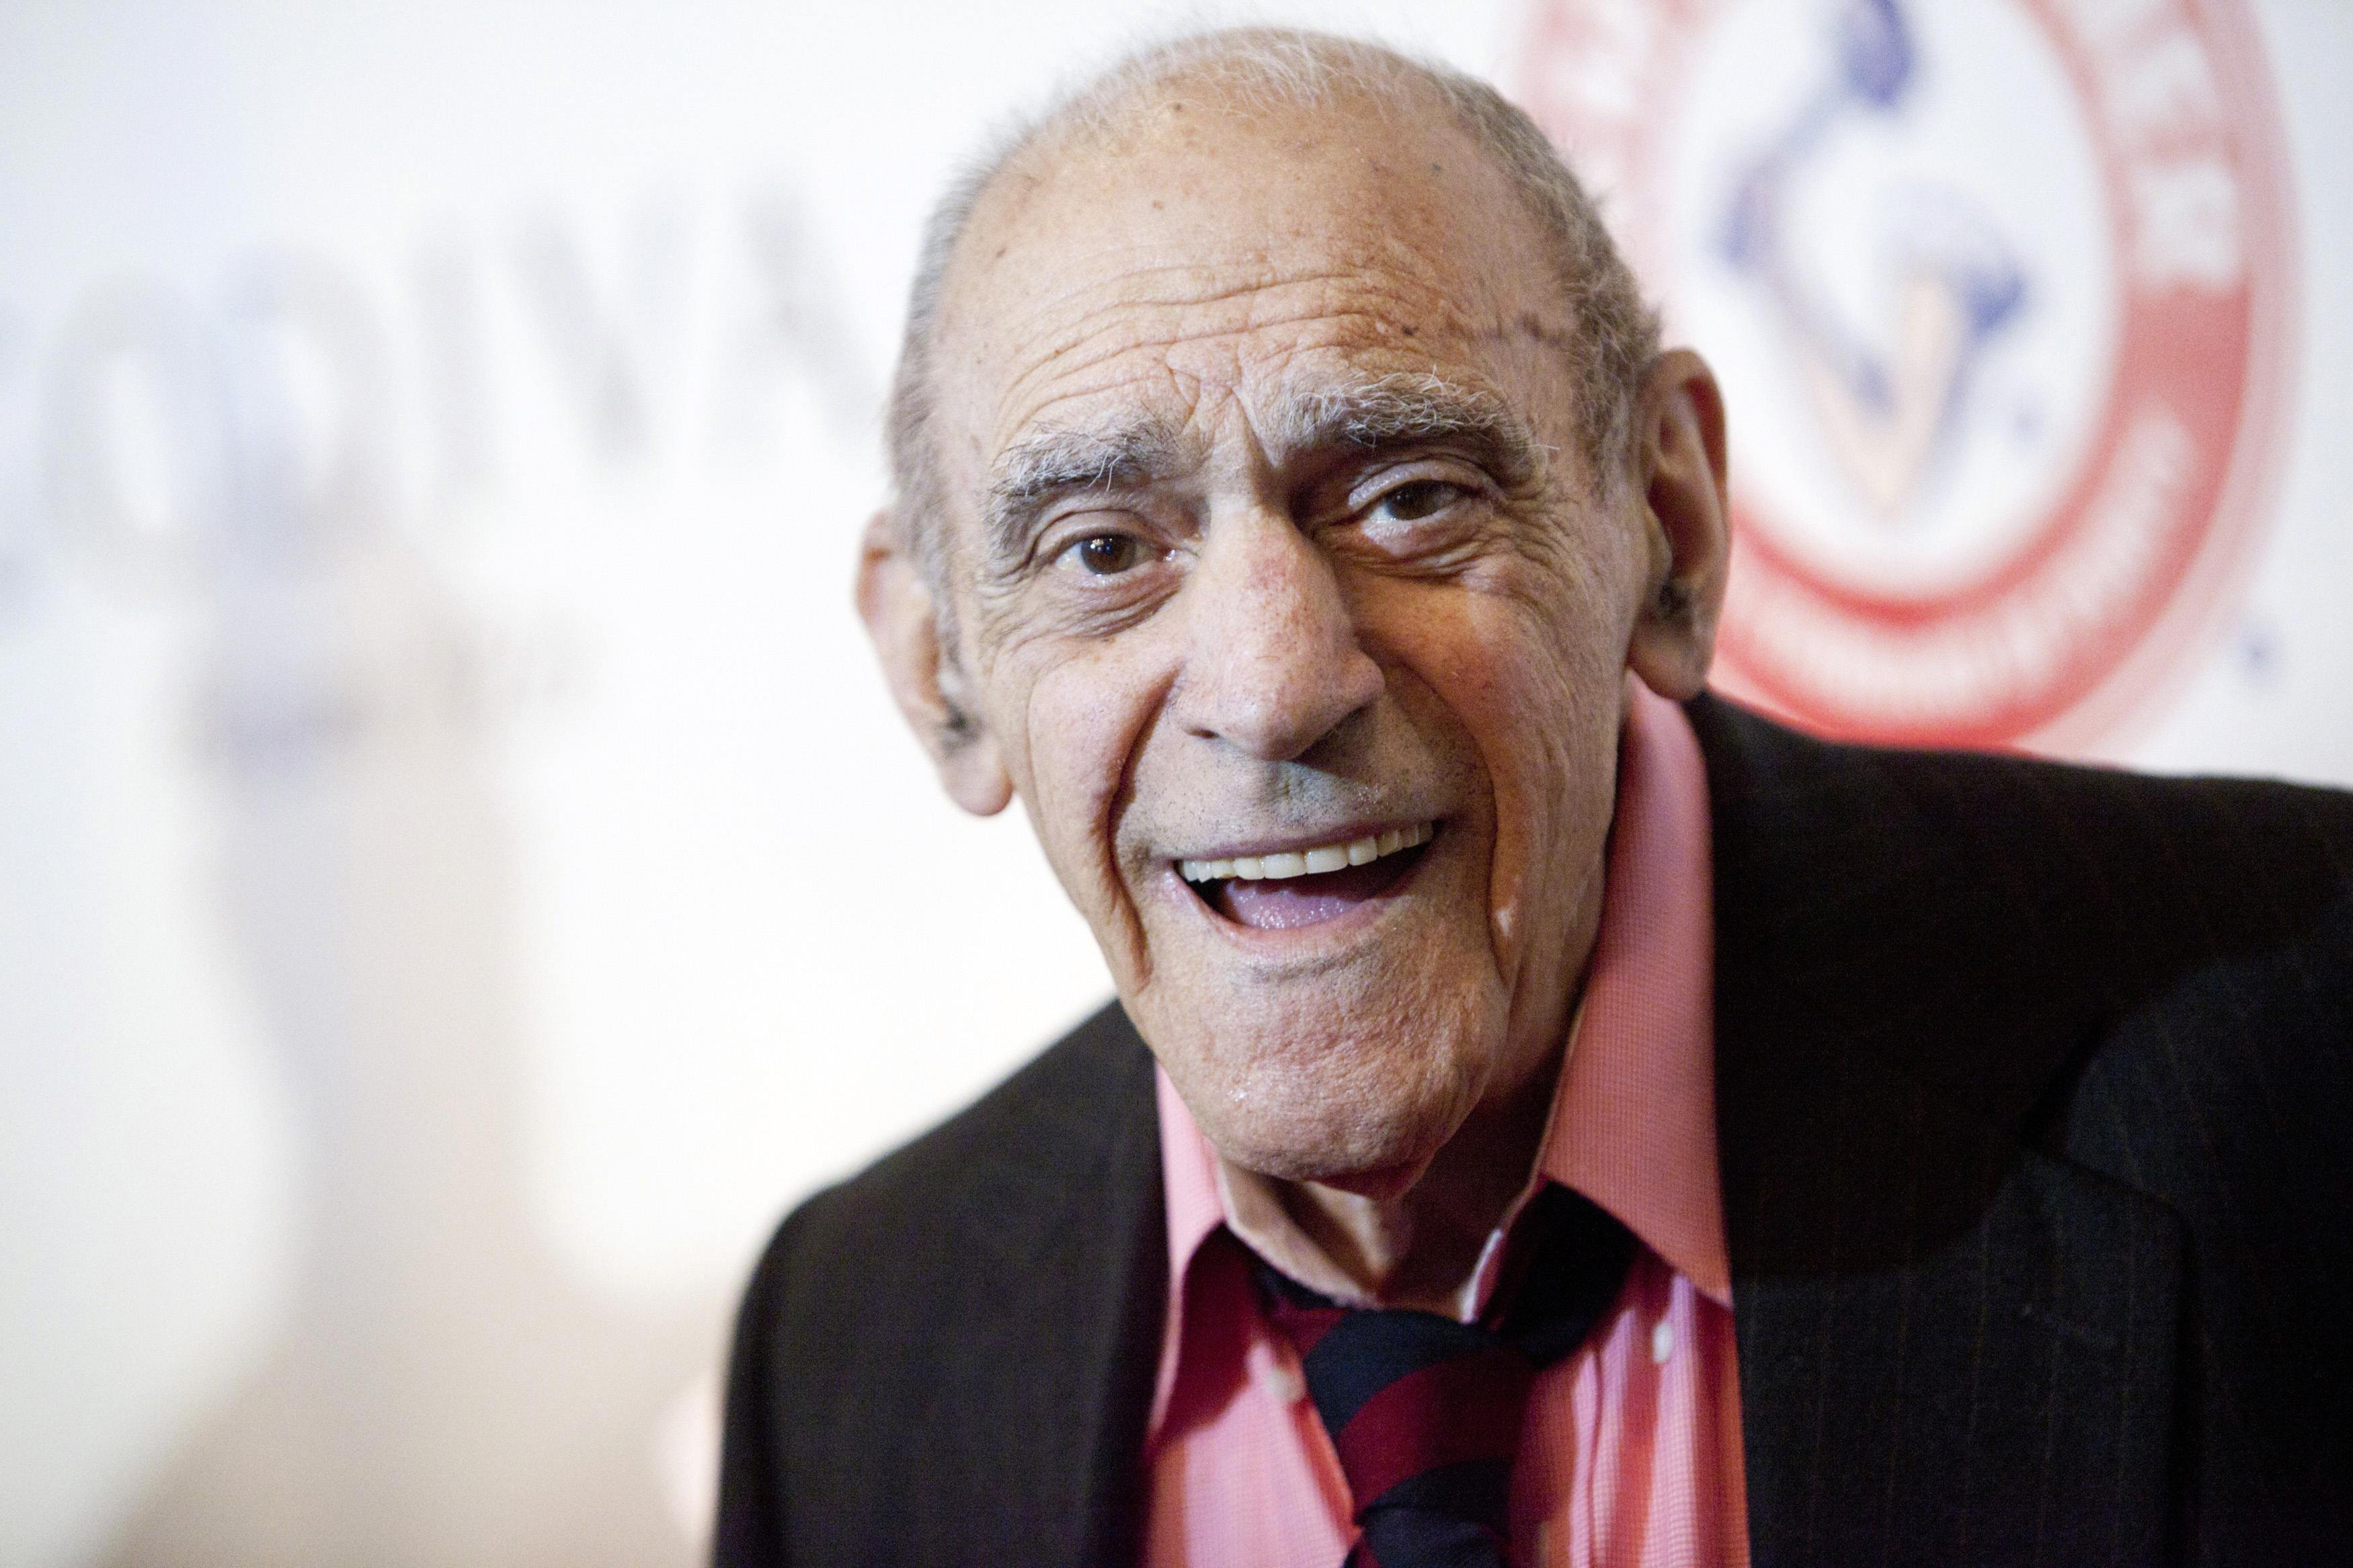 Abe Vigoda attends the Friars Club Roast of Betty White in New York City on May 16, 2012.